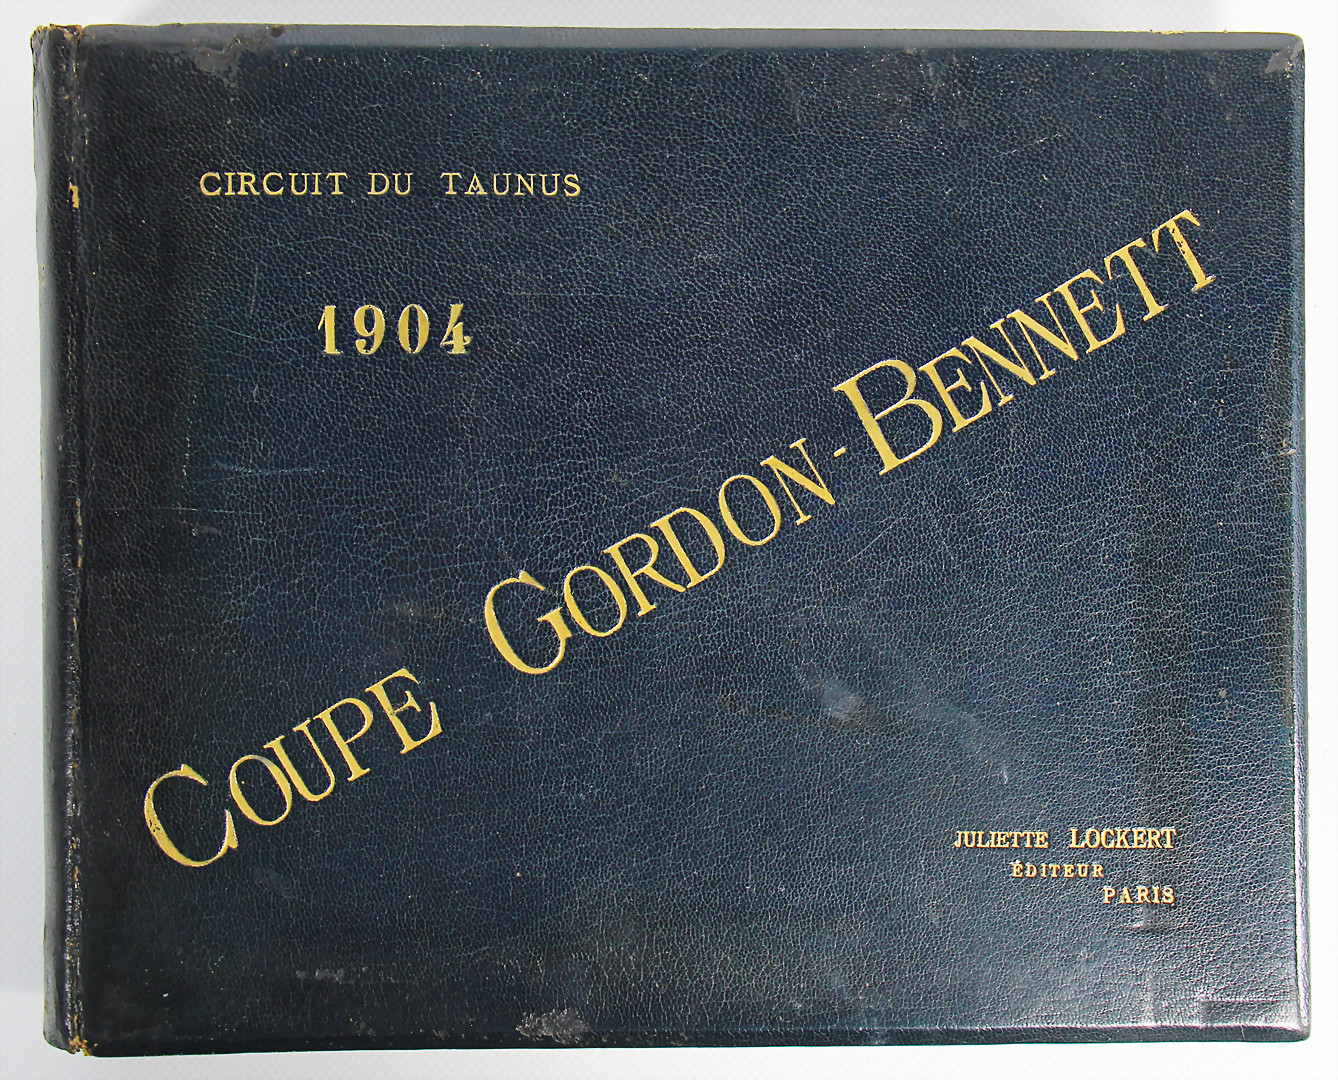 Album Coupe Gordon Bennett 1904 - hammer price 7.200 €